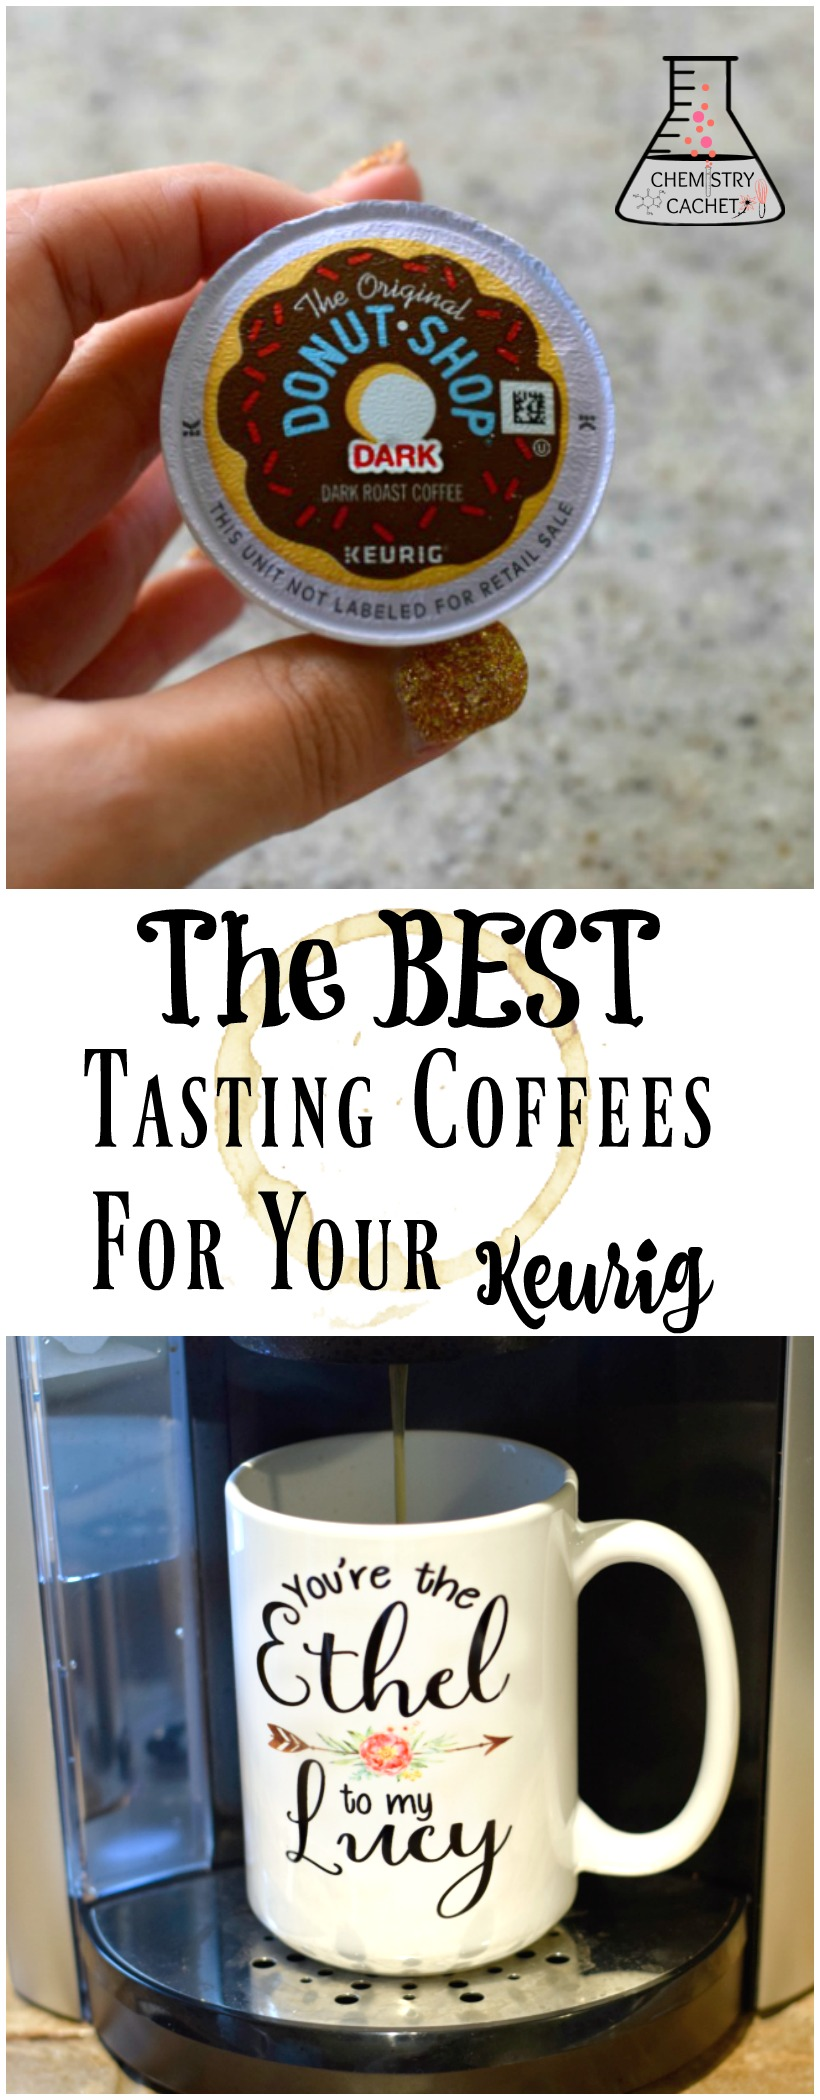 The BEST tasting coffees for Keurig! Perfect for any coffee lover on chemistrycachet.com